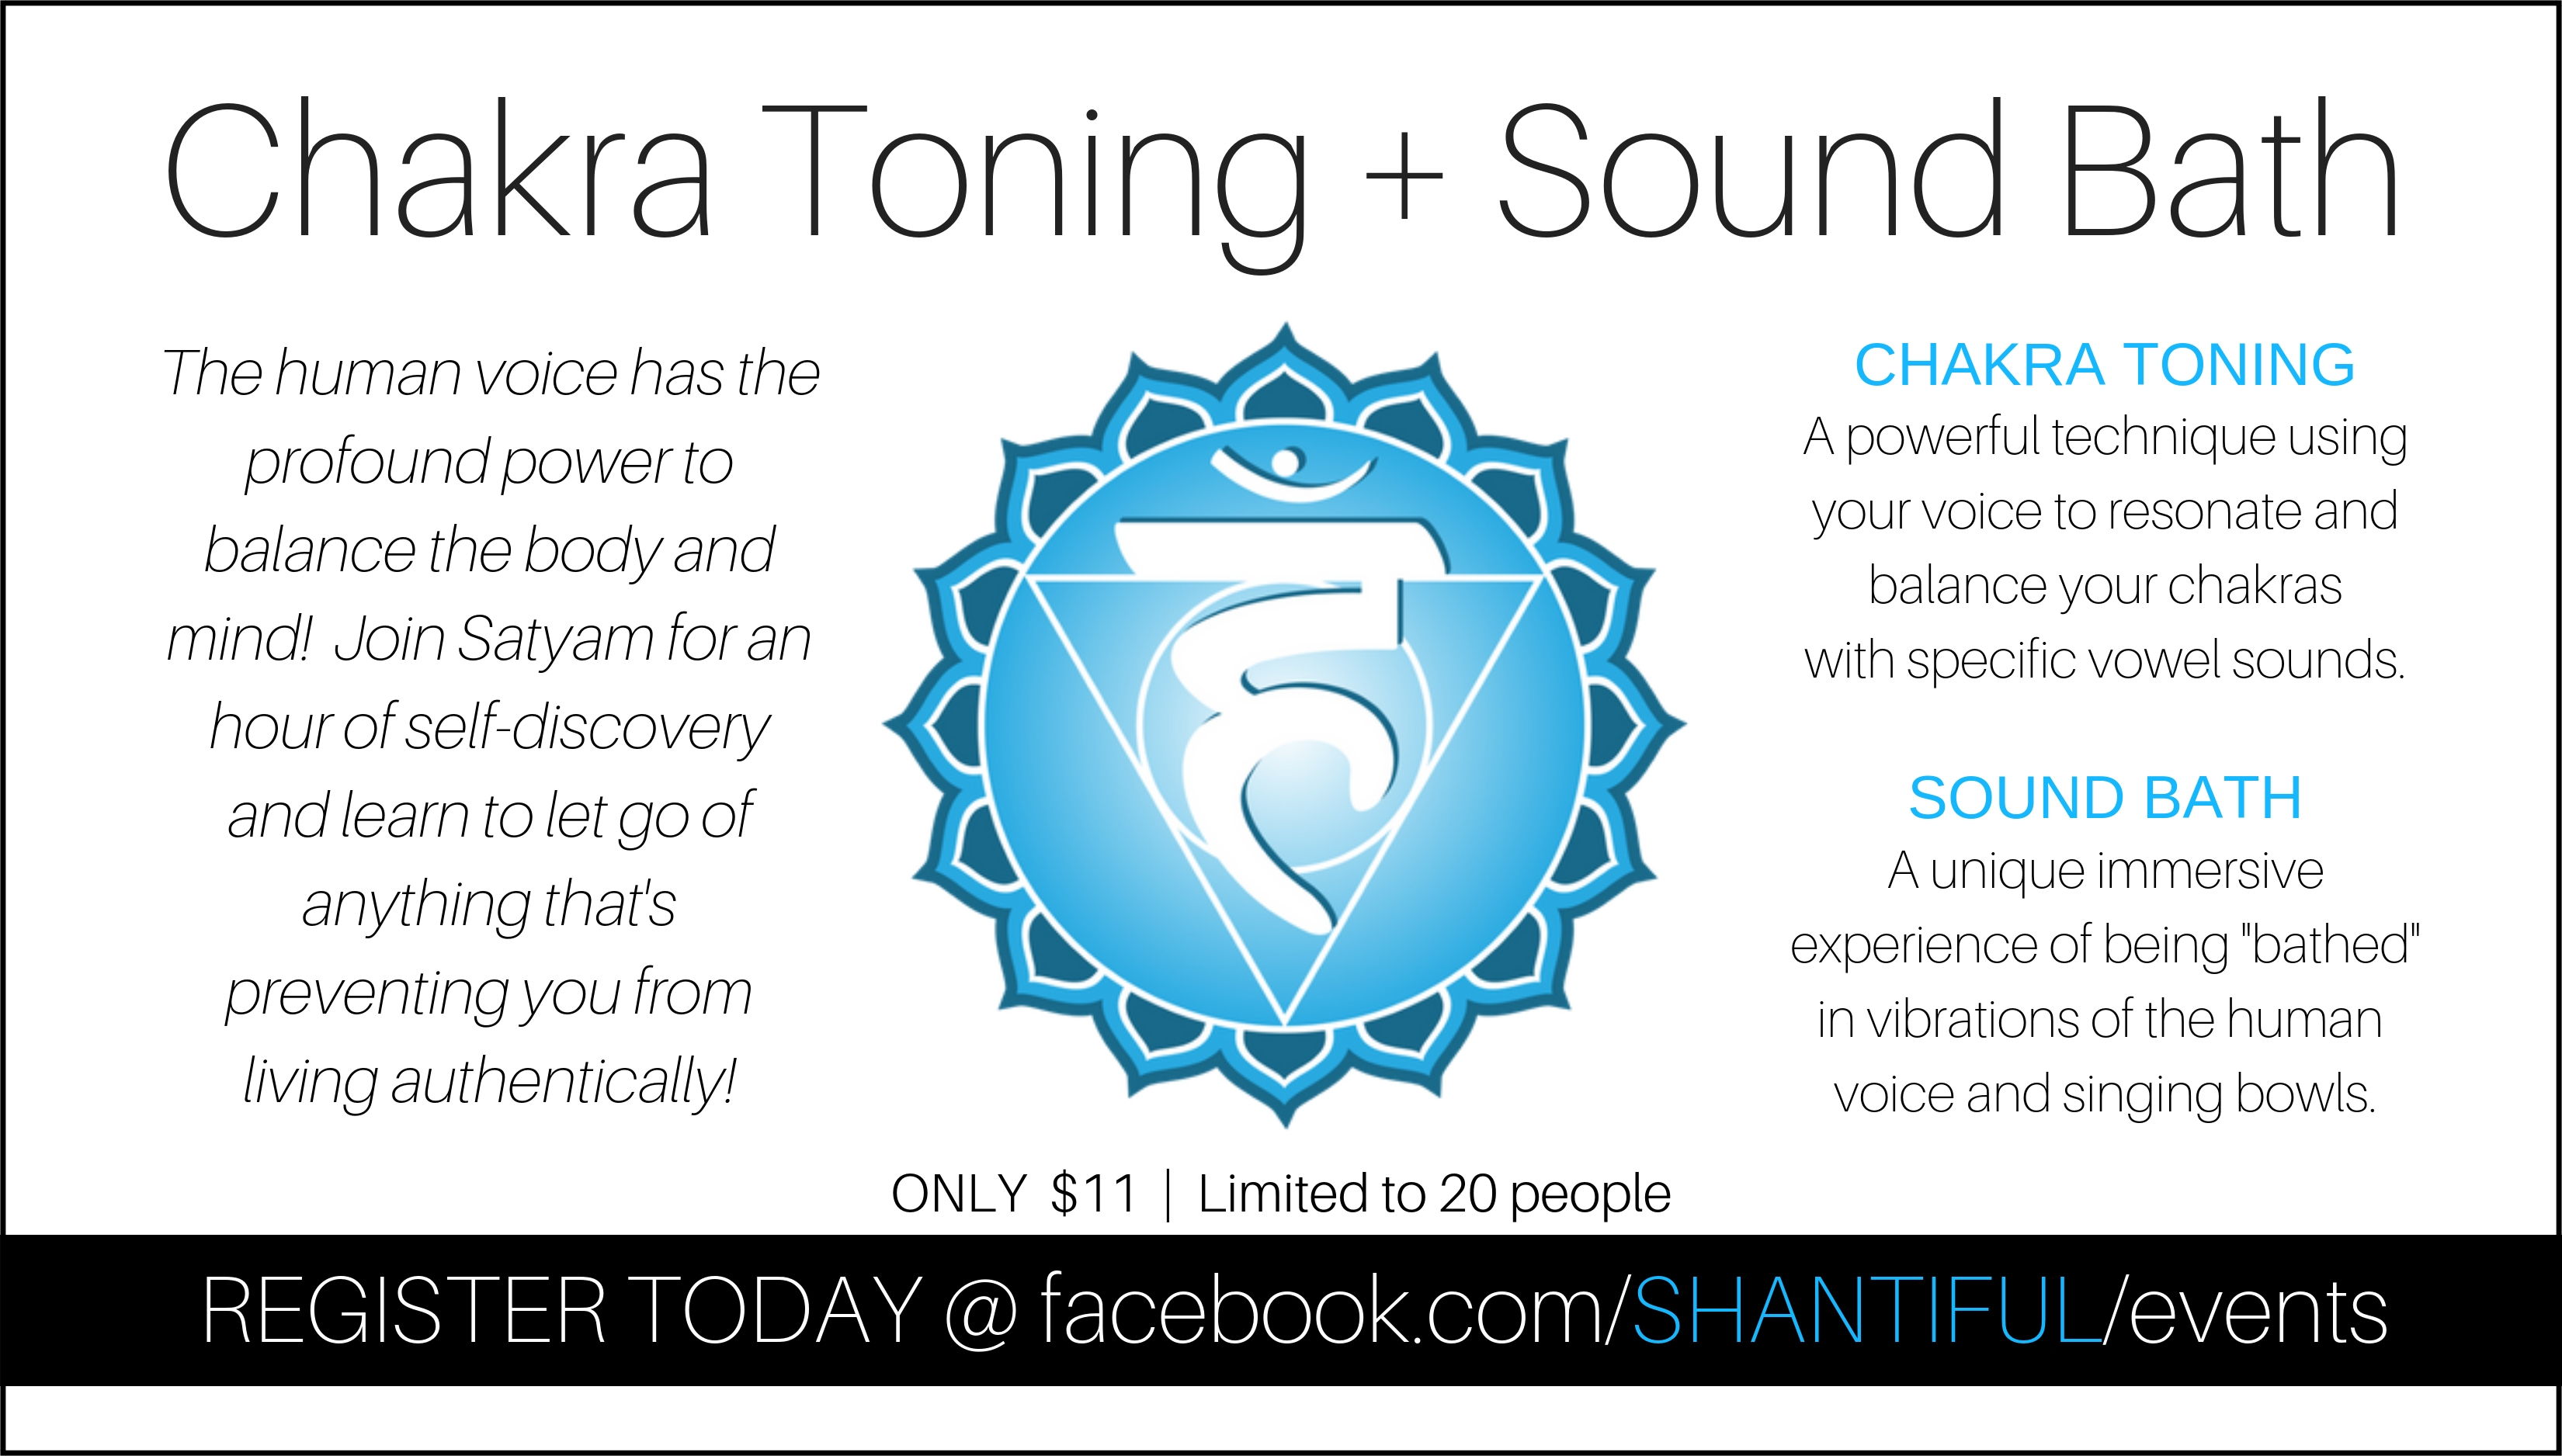 CHAKRA TONING:  Learn and experience how your voice can clear, balance, and heal your chakras (energy centers located along the central channel of the body from the base of the spine to the top of the head).  This class will be divided into 3 parts:  Chakra Toning, Breathwork, and Sound Bath.